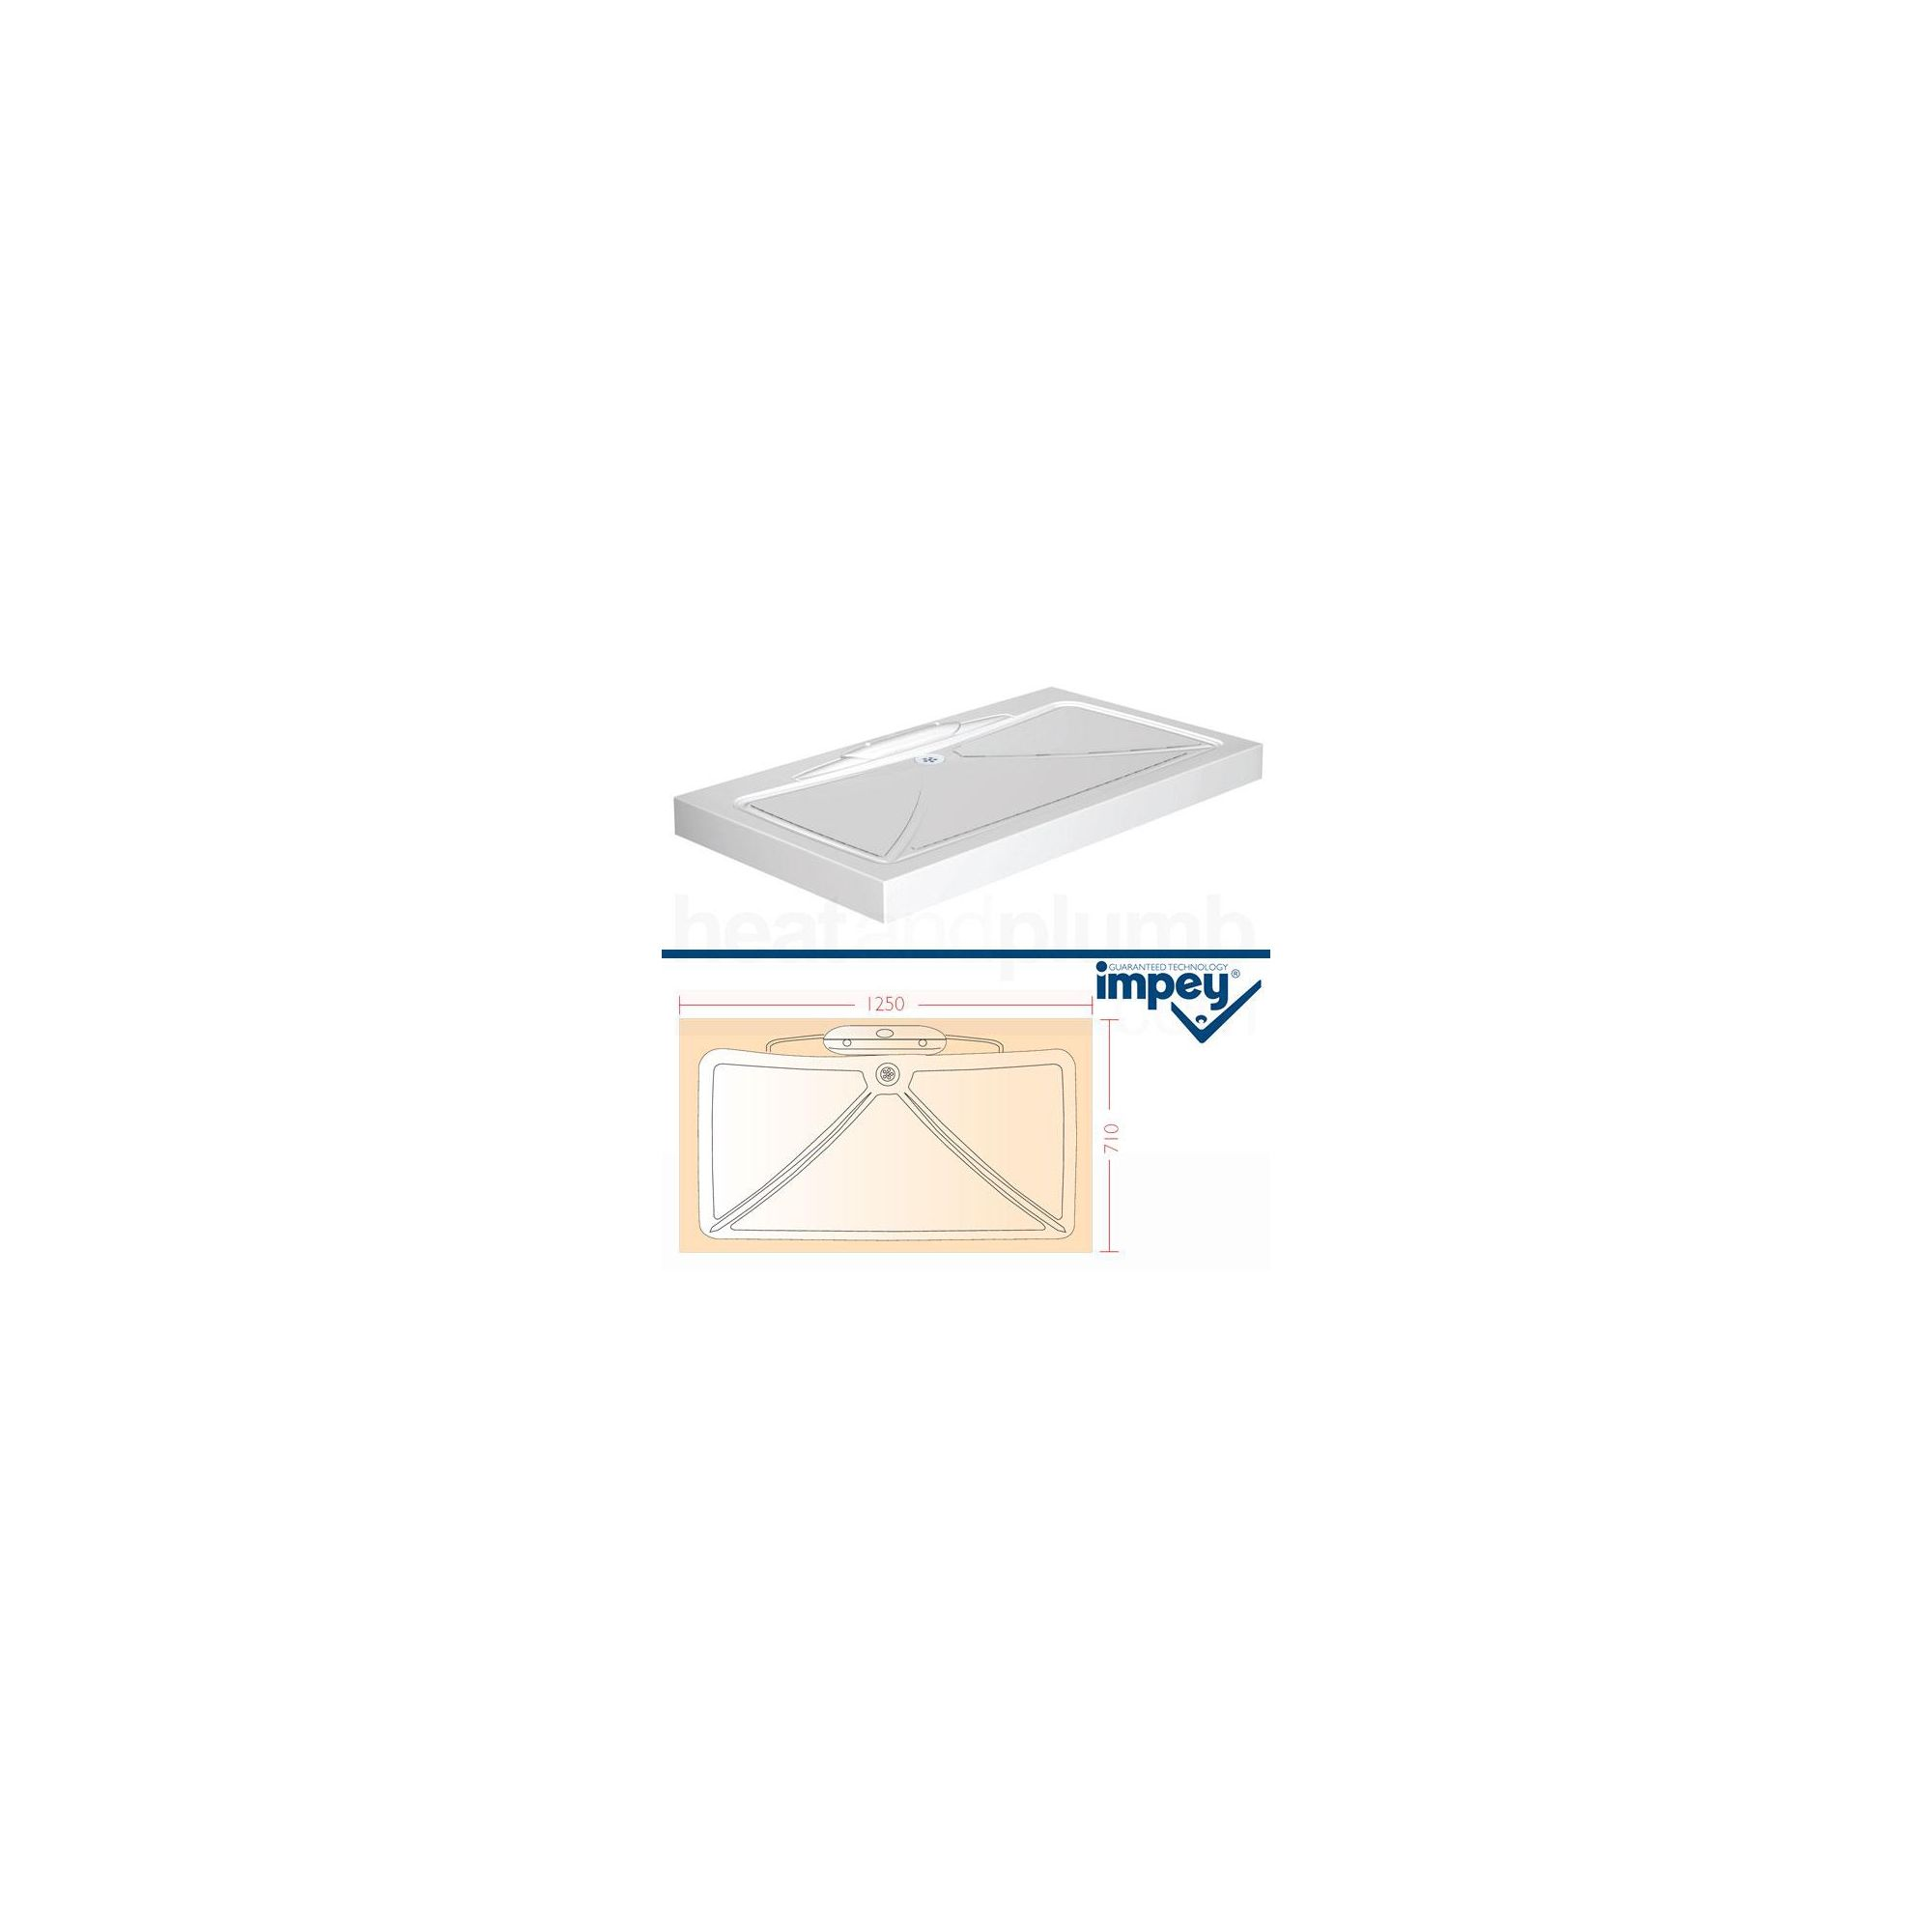 Impey Mendip Shower Tray 1250mm x 710mm at Tesco Direct